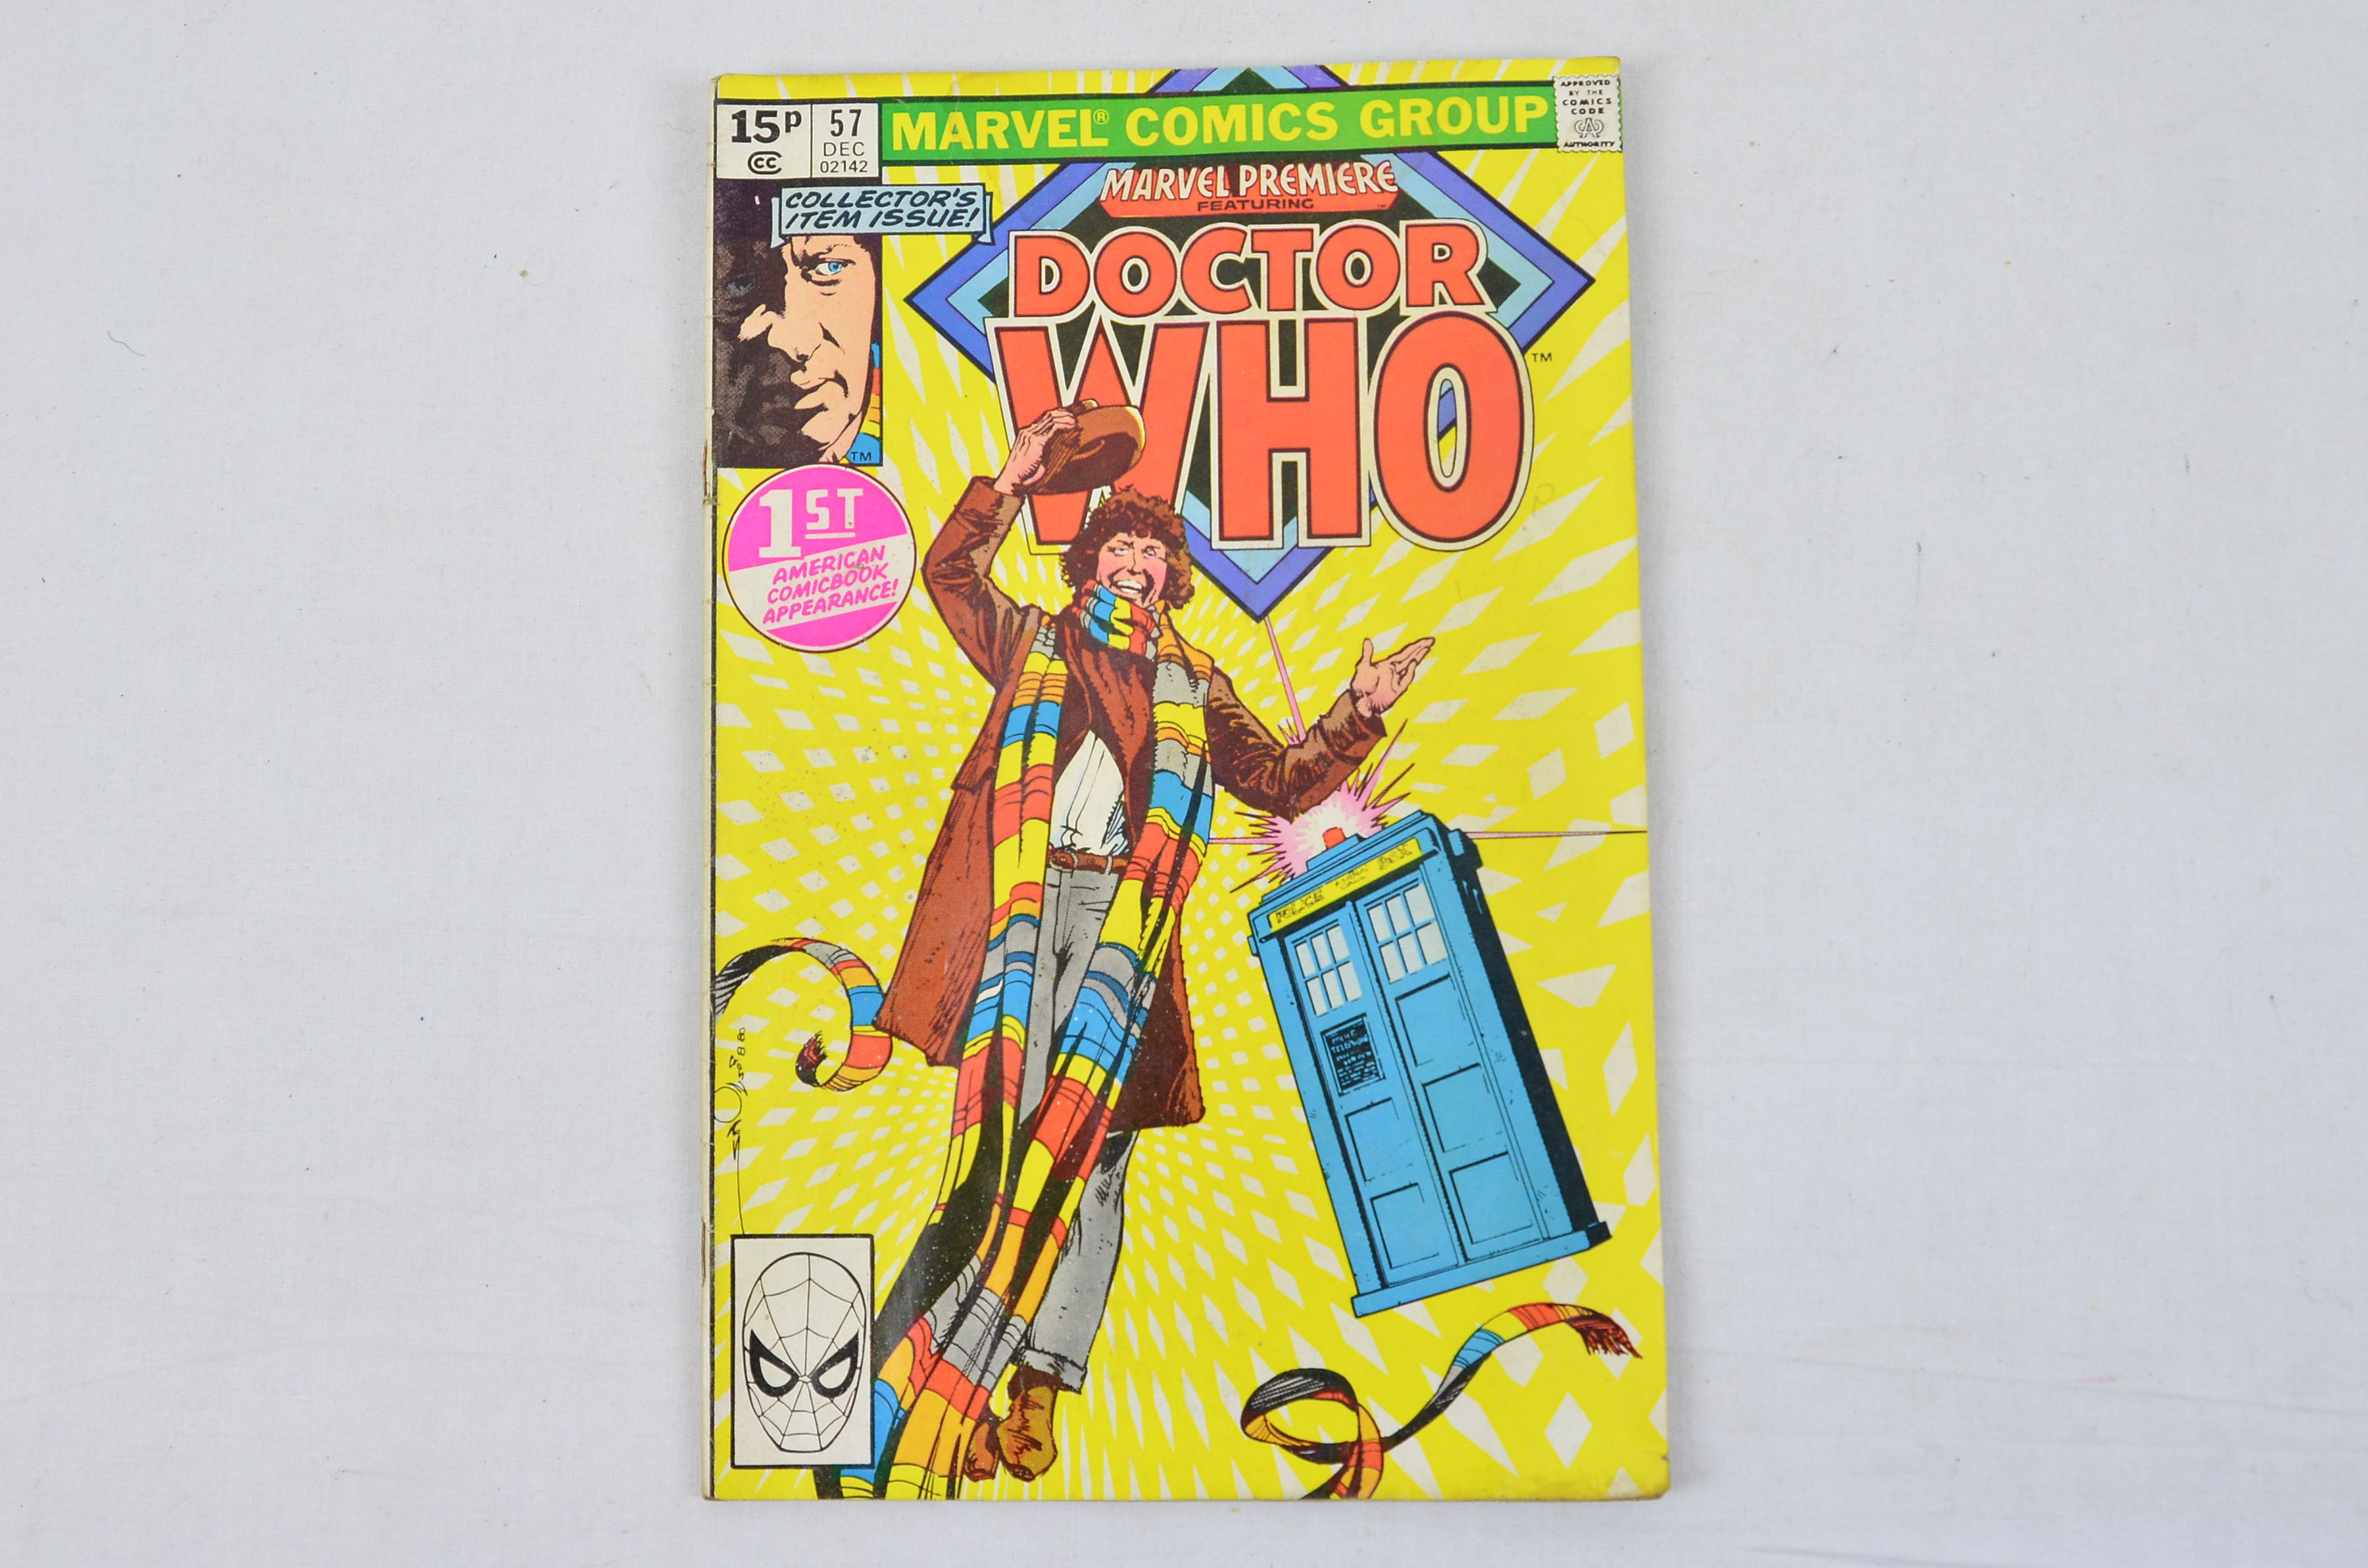 Vintage Marvel Comics Group Marvel Premiere Featuring: Doctor Who Collectable 1